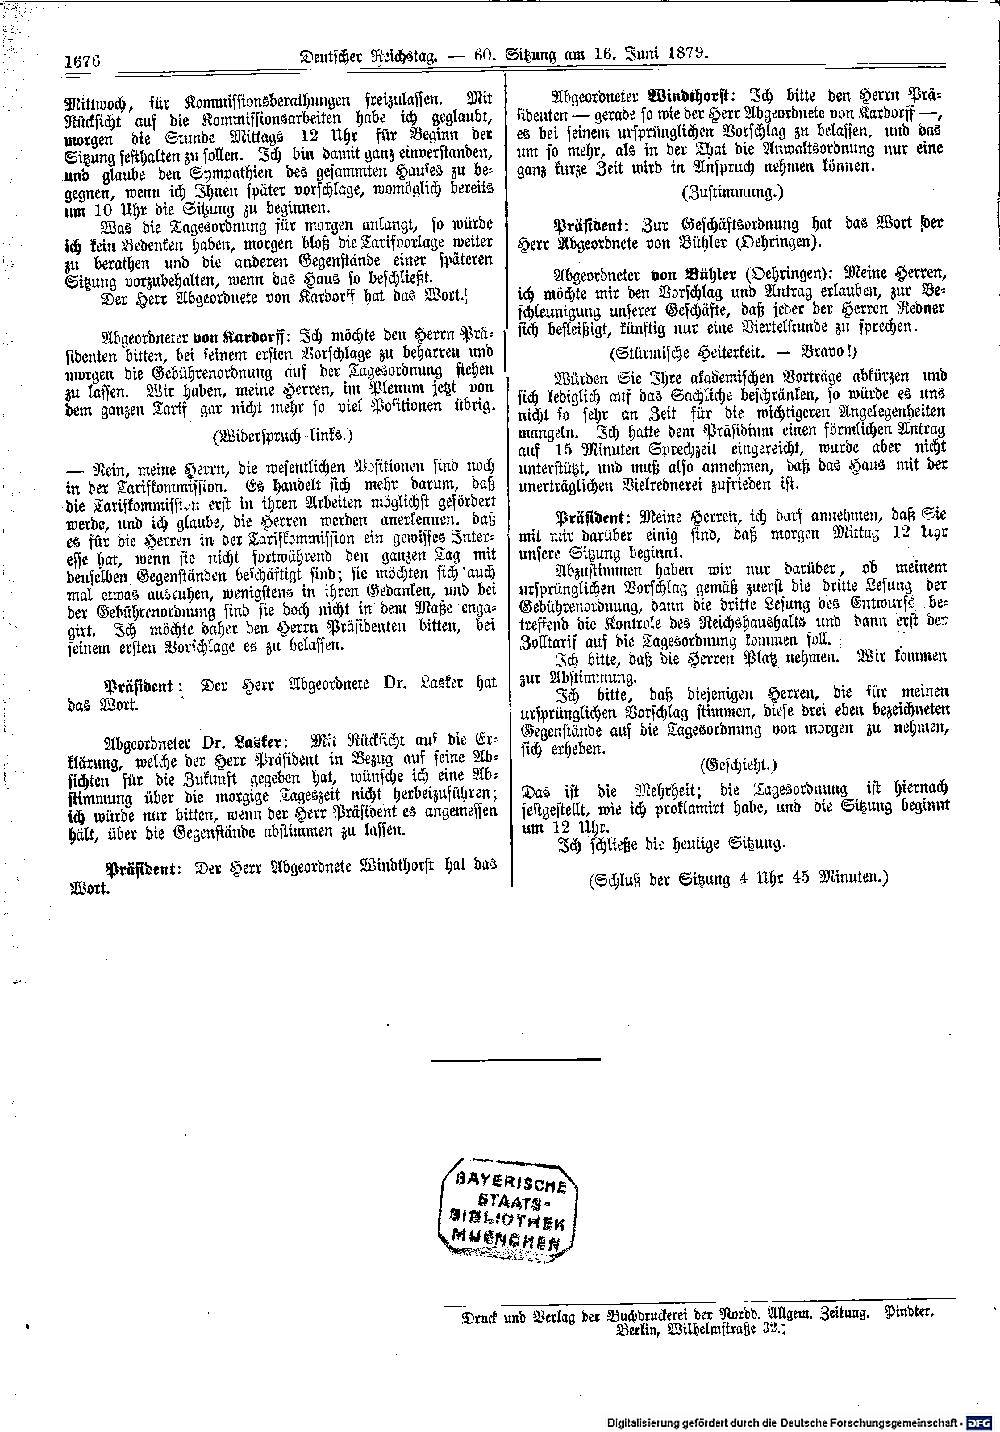 Scan of page 1676